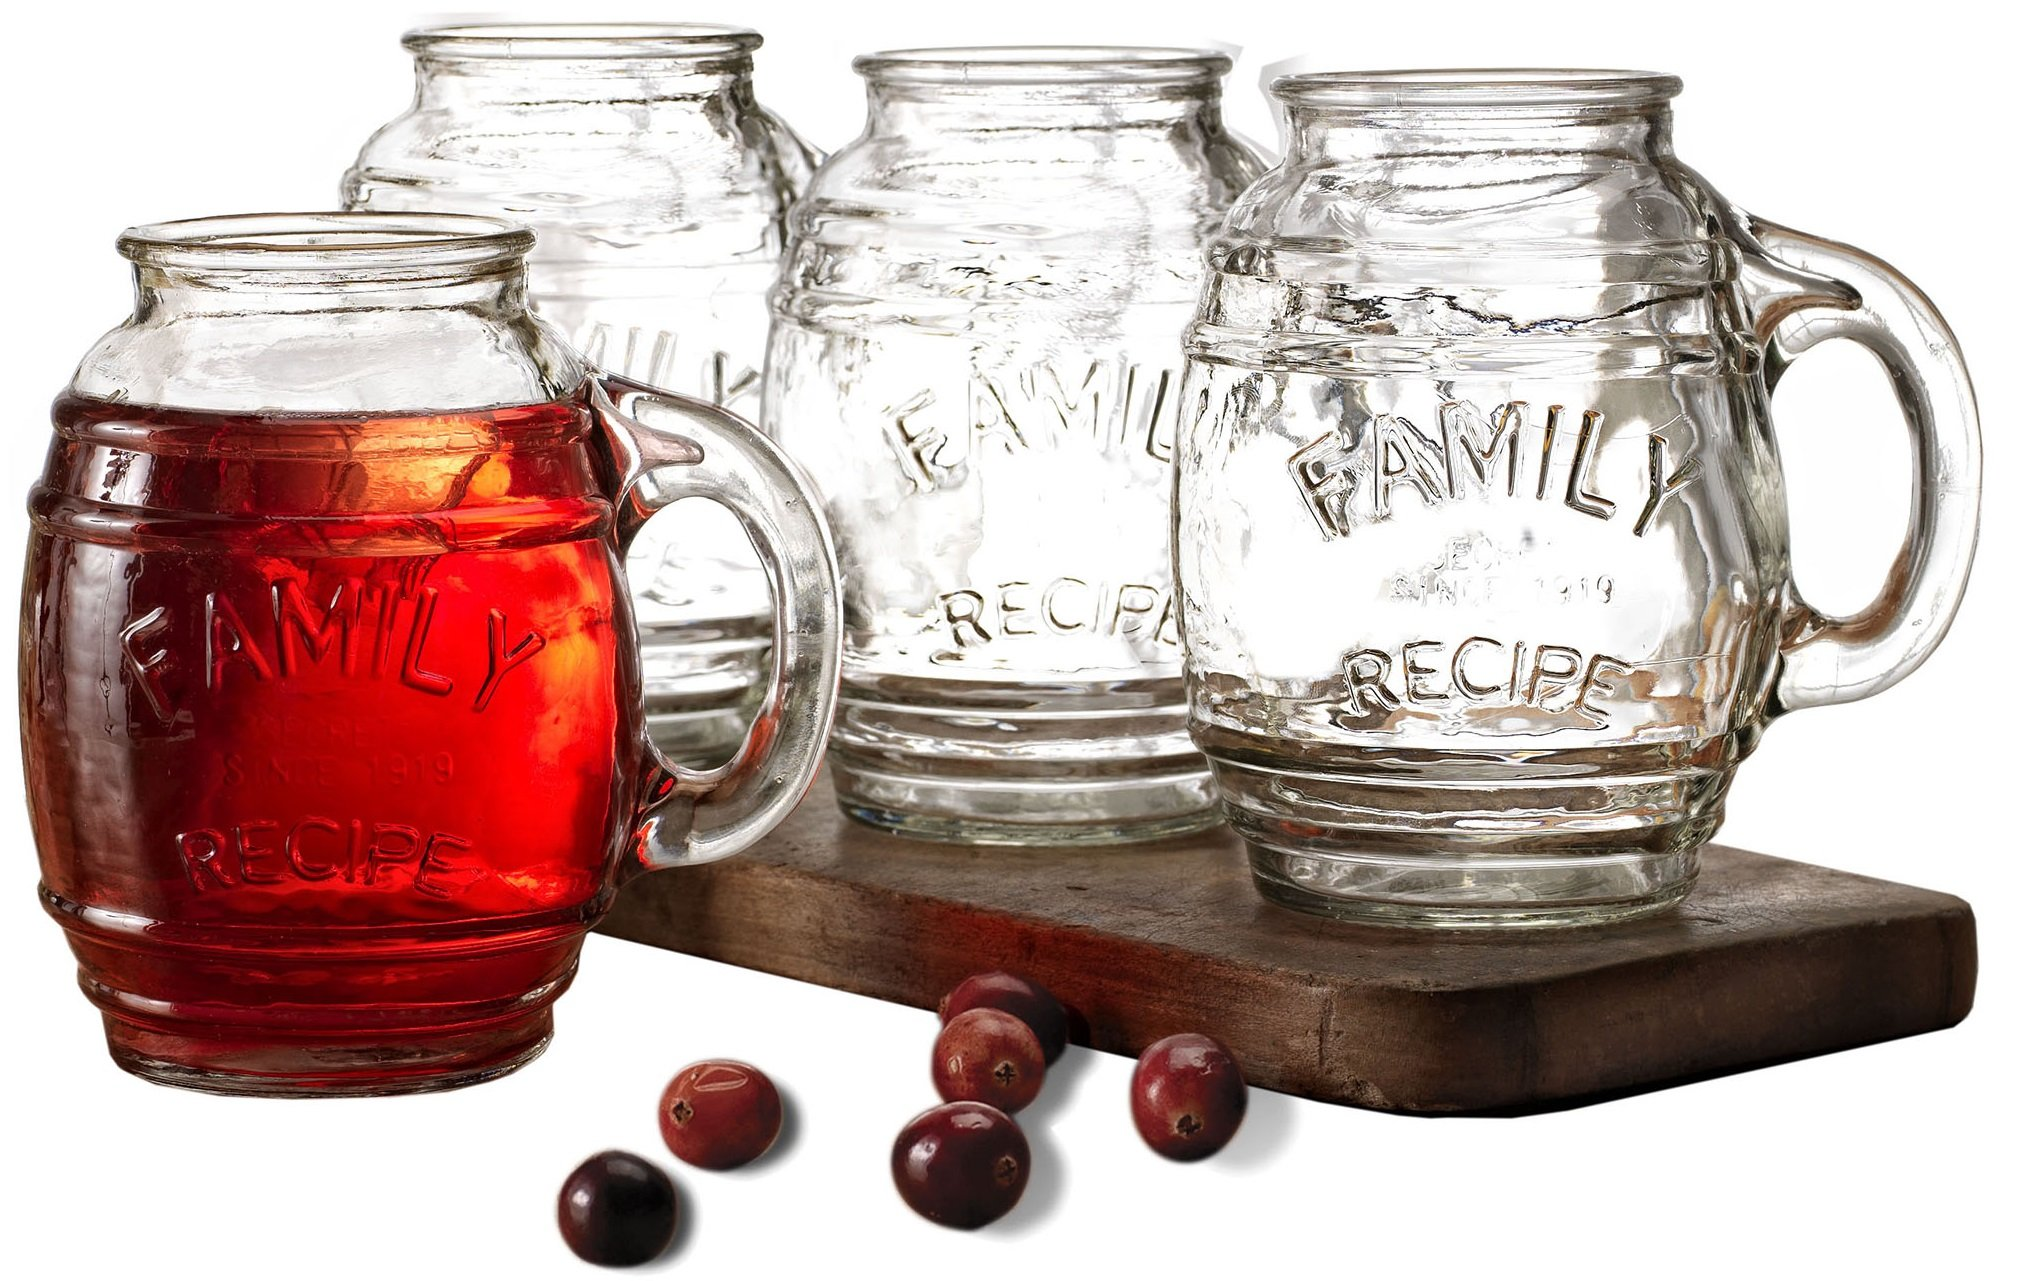 Circleware Family Recipe Glass Drinking Glasses, Set of 4 Beer Barrel Mugs with Handles, 26 ounce